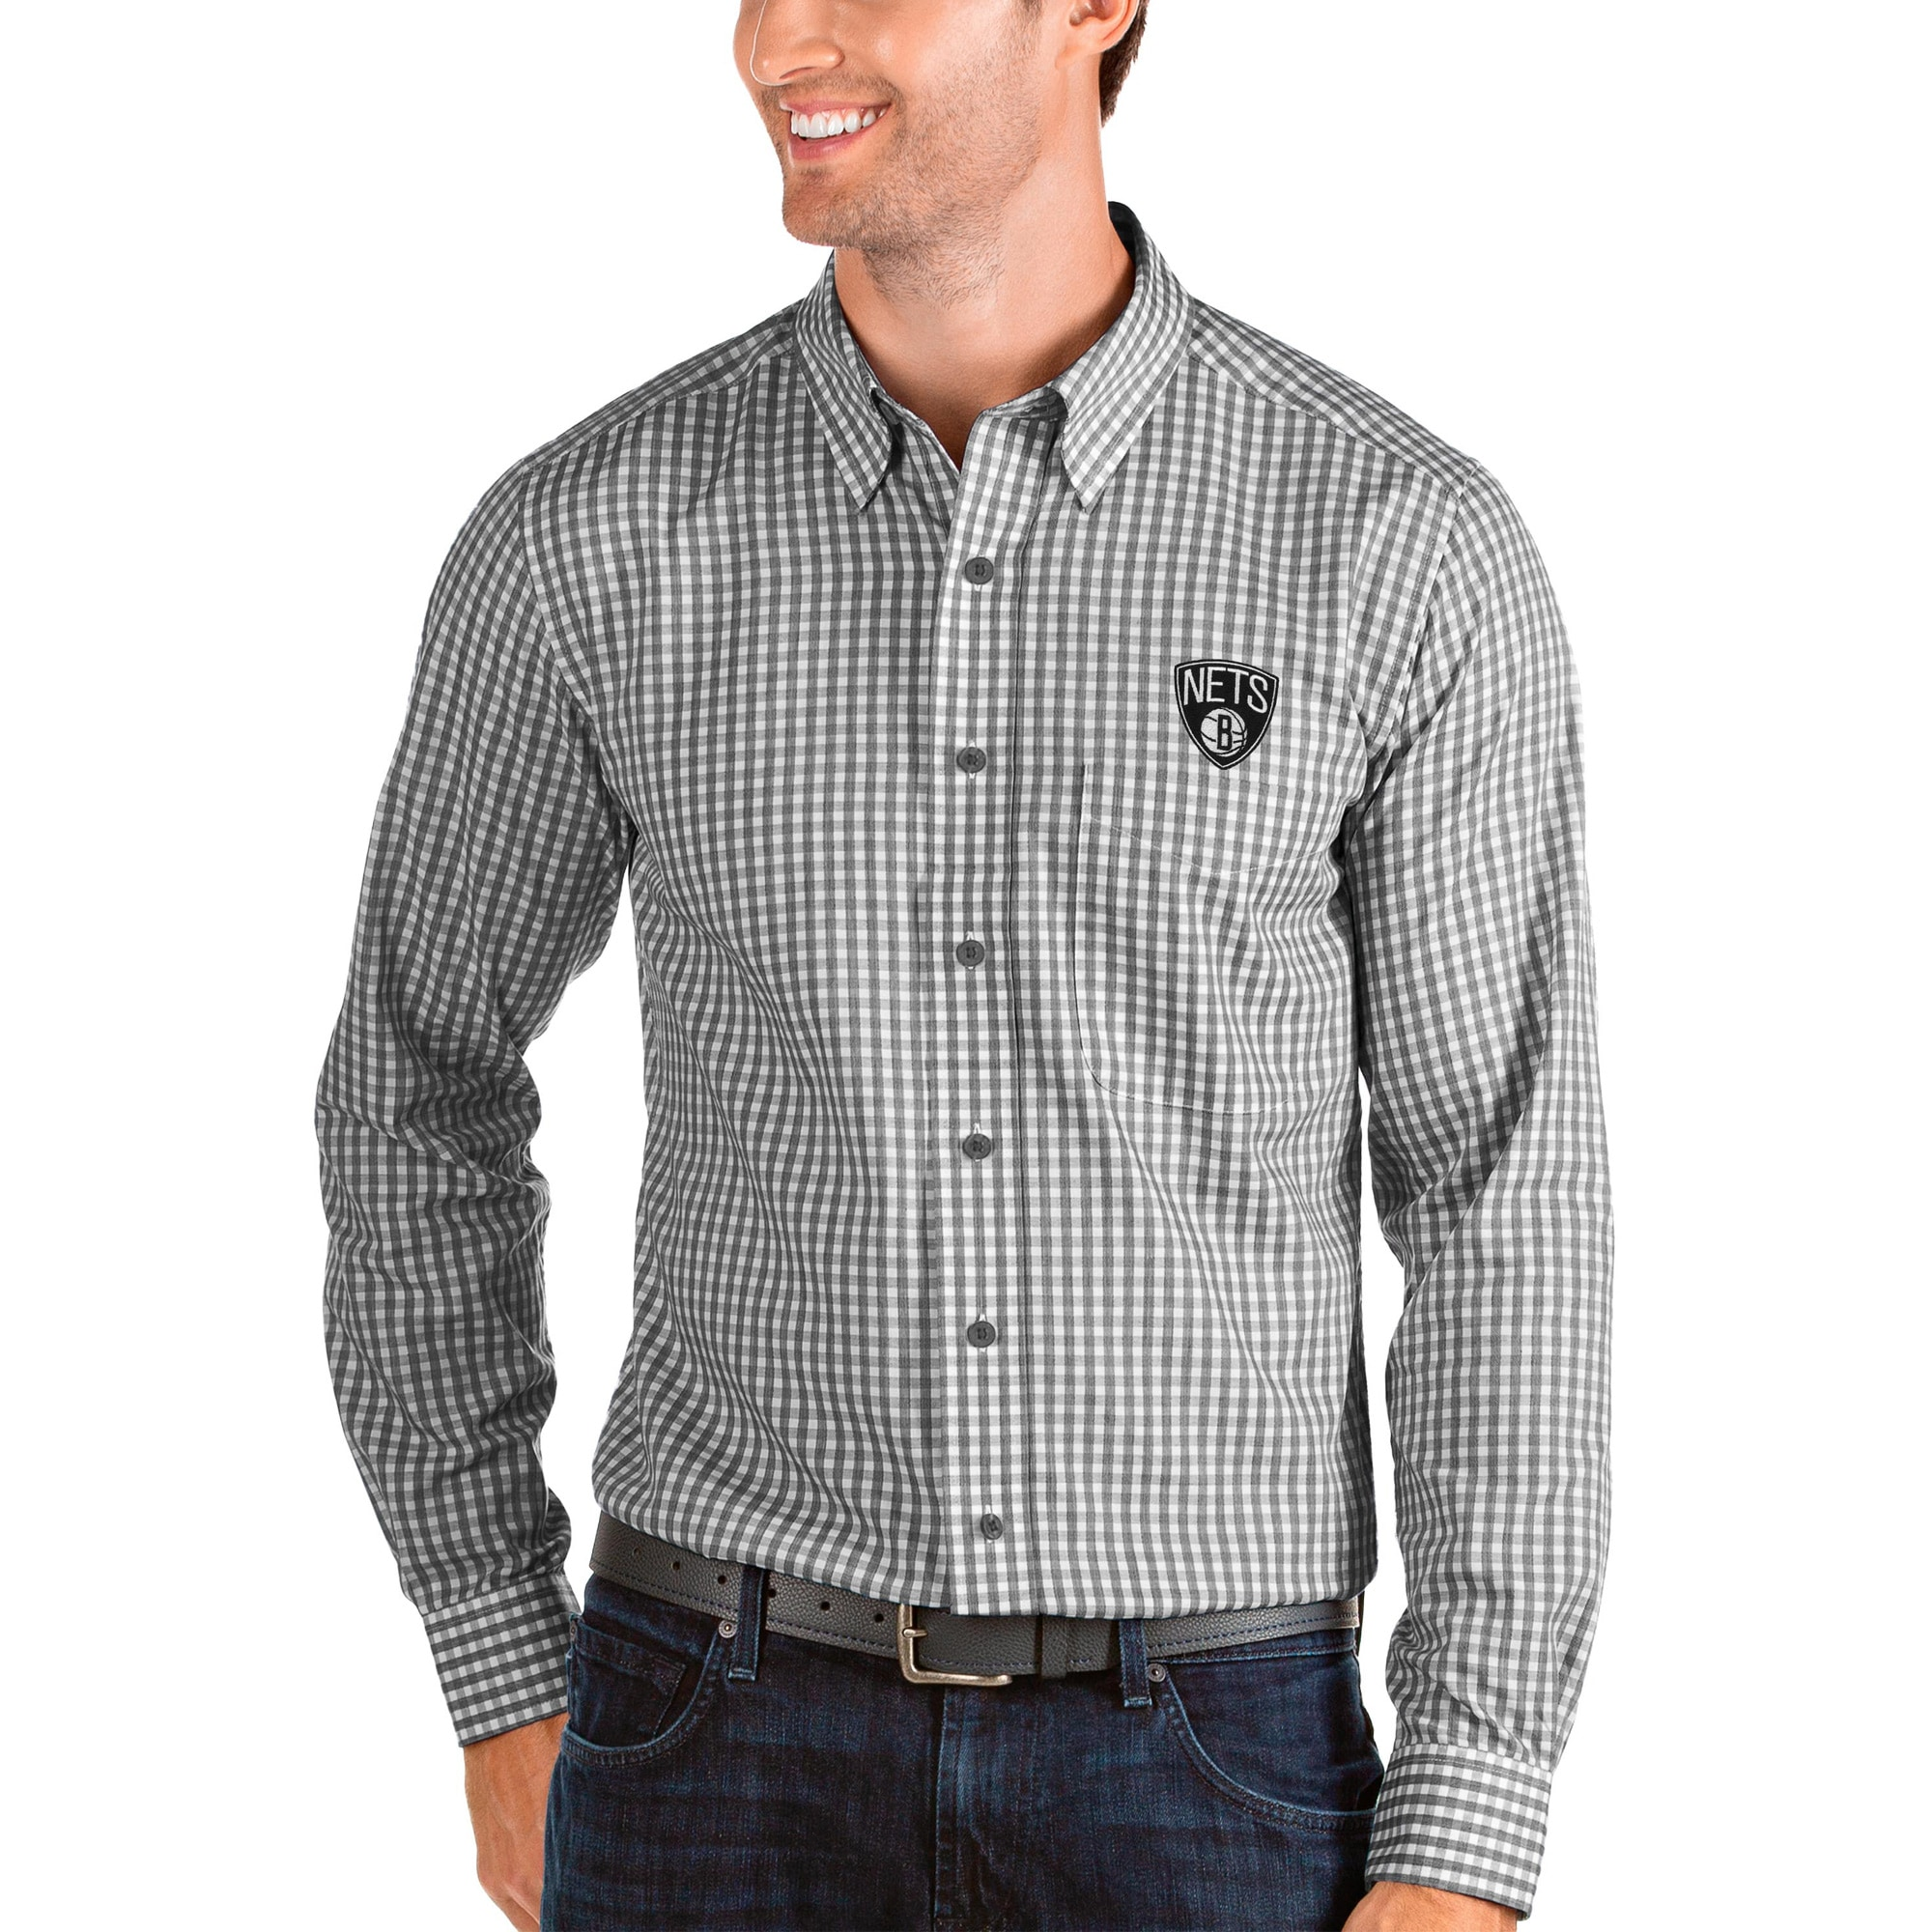 Brooklyn Nets Antigua Structure Long Sleeve Button-Up Shirt - Black/White